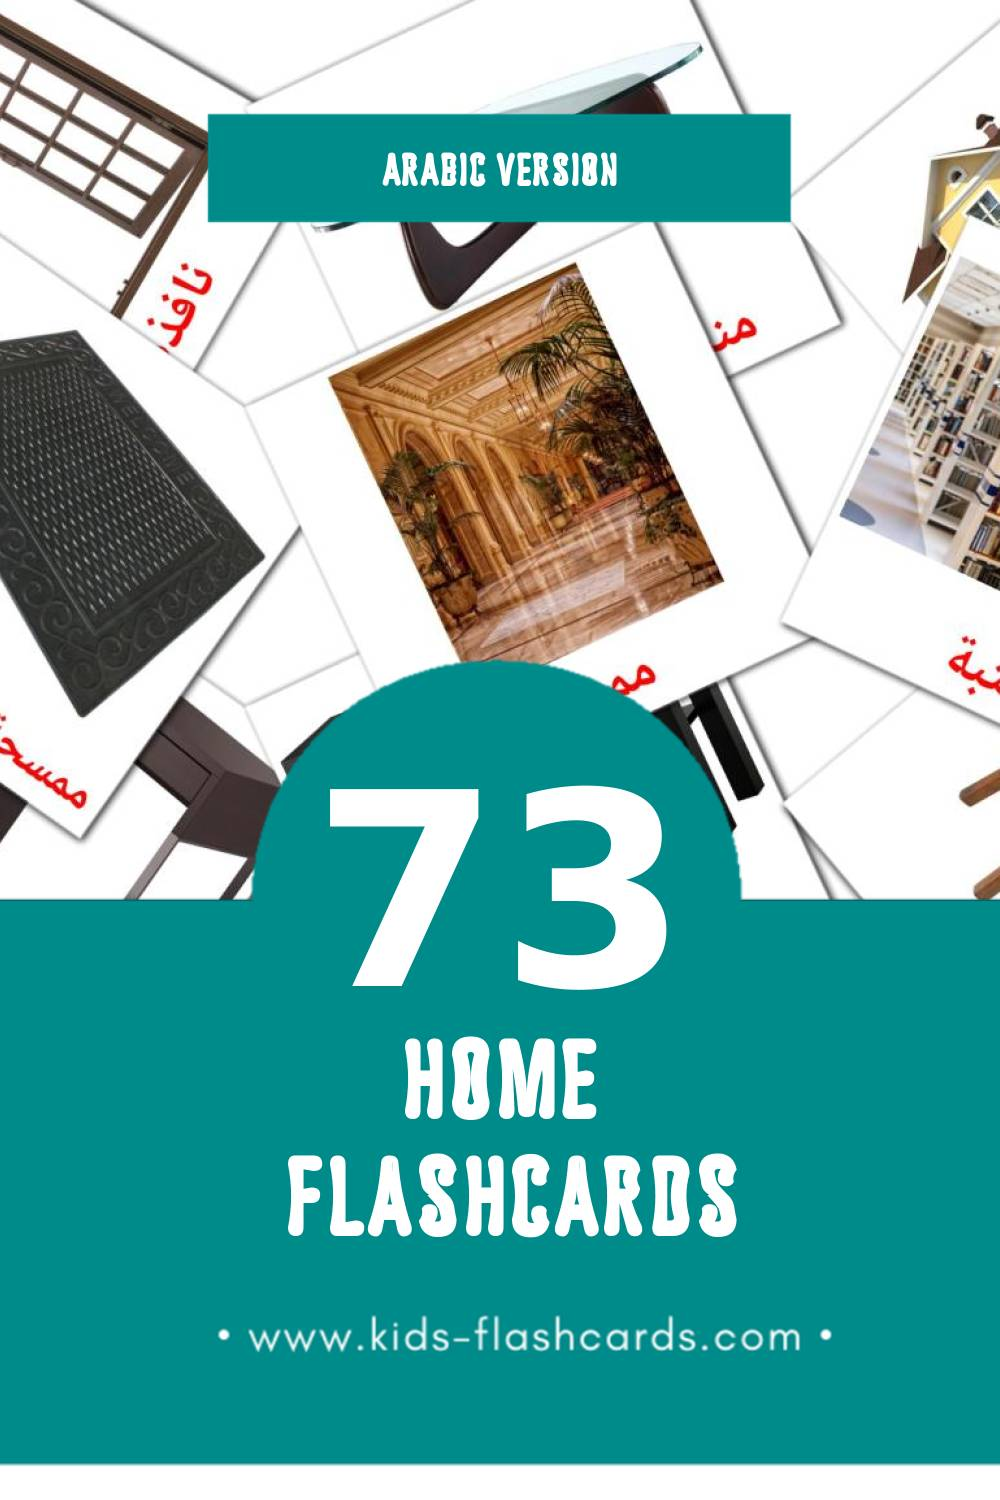 Visual المنزل Flashcards for Toddlers (73 cards in Arabic)